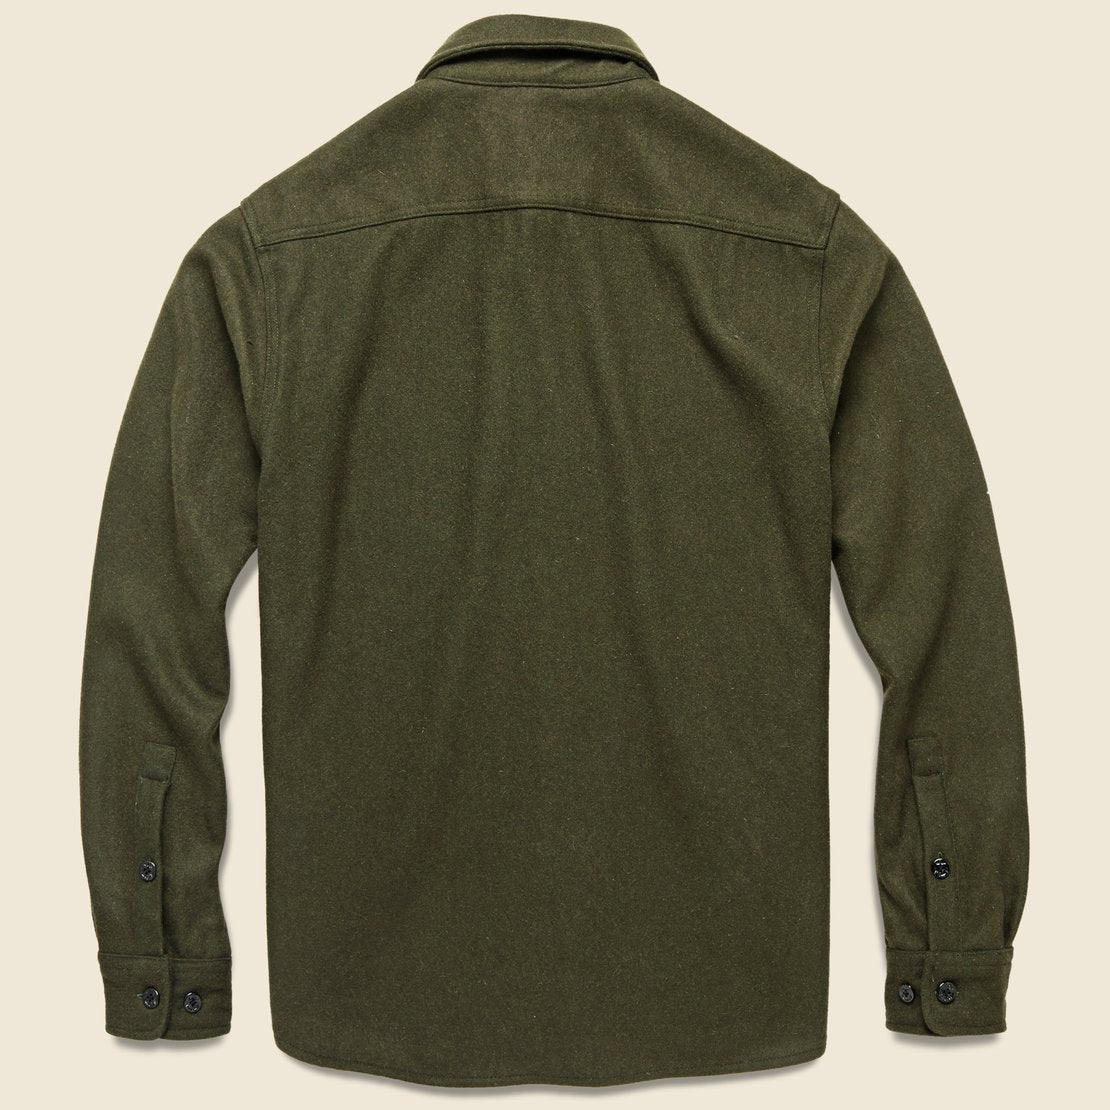 CPO Wool Shirt - Olive